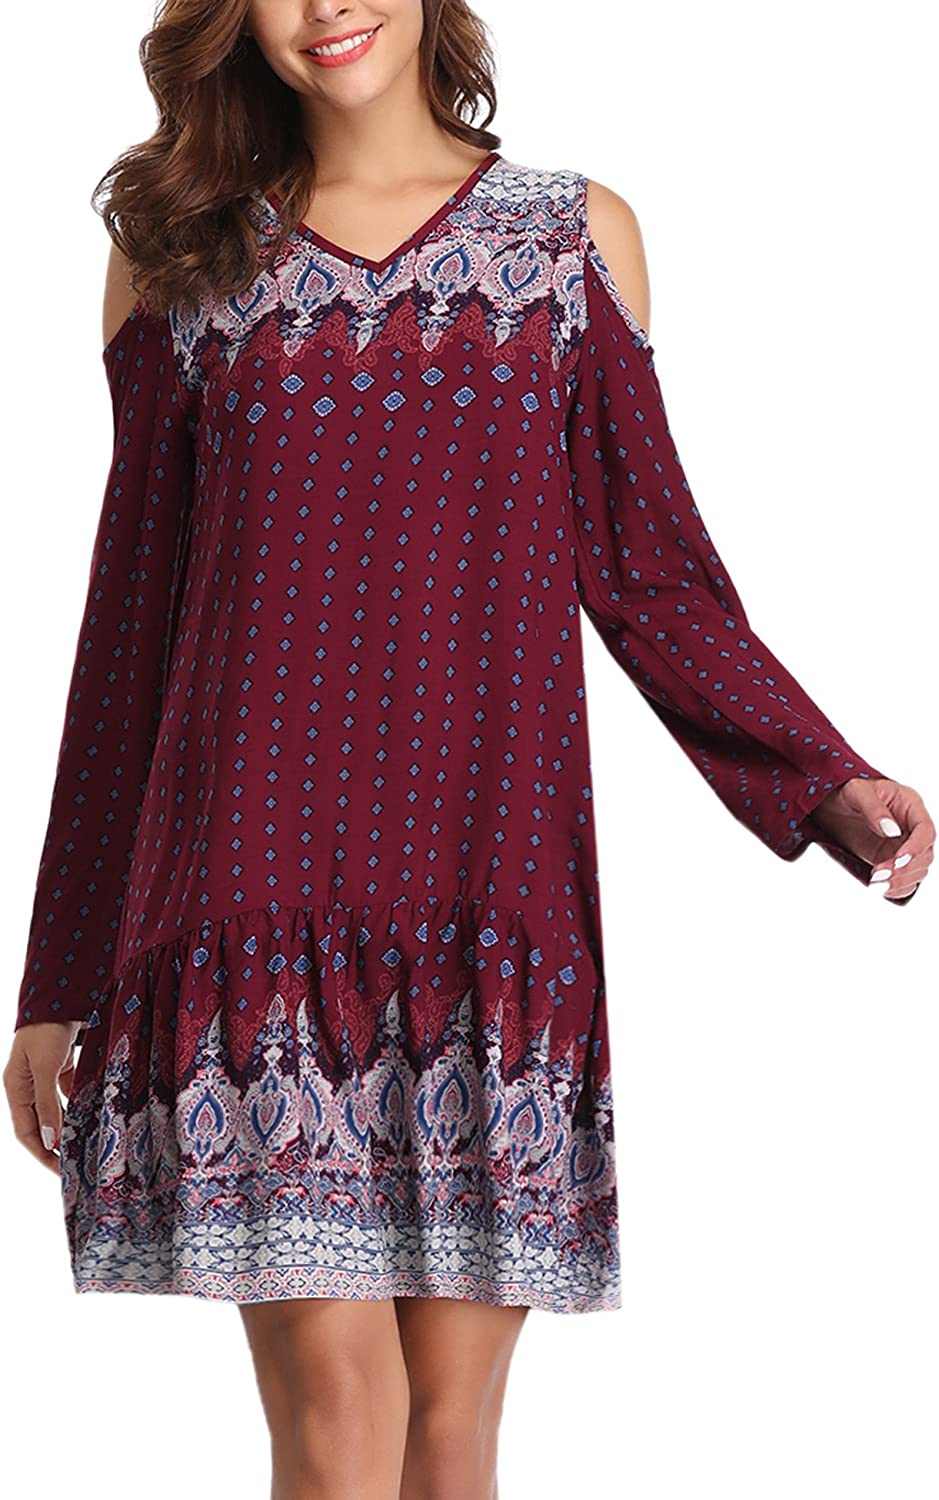 Abollria Women's Bohemian Vintage Printed Loose Casual Boho Tunic Dress